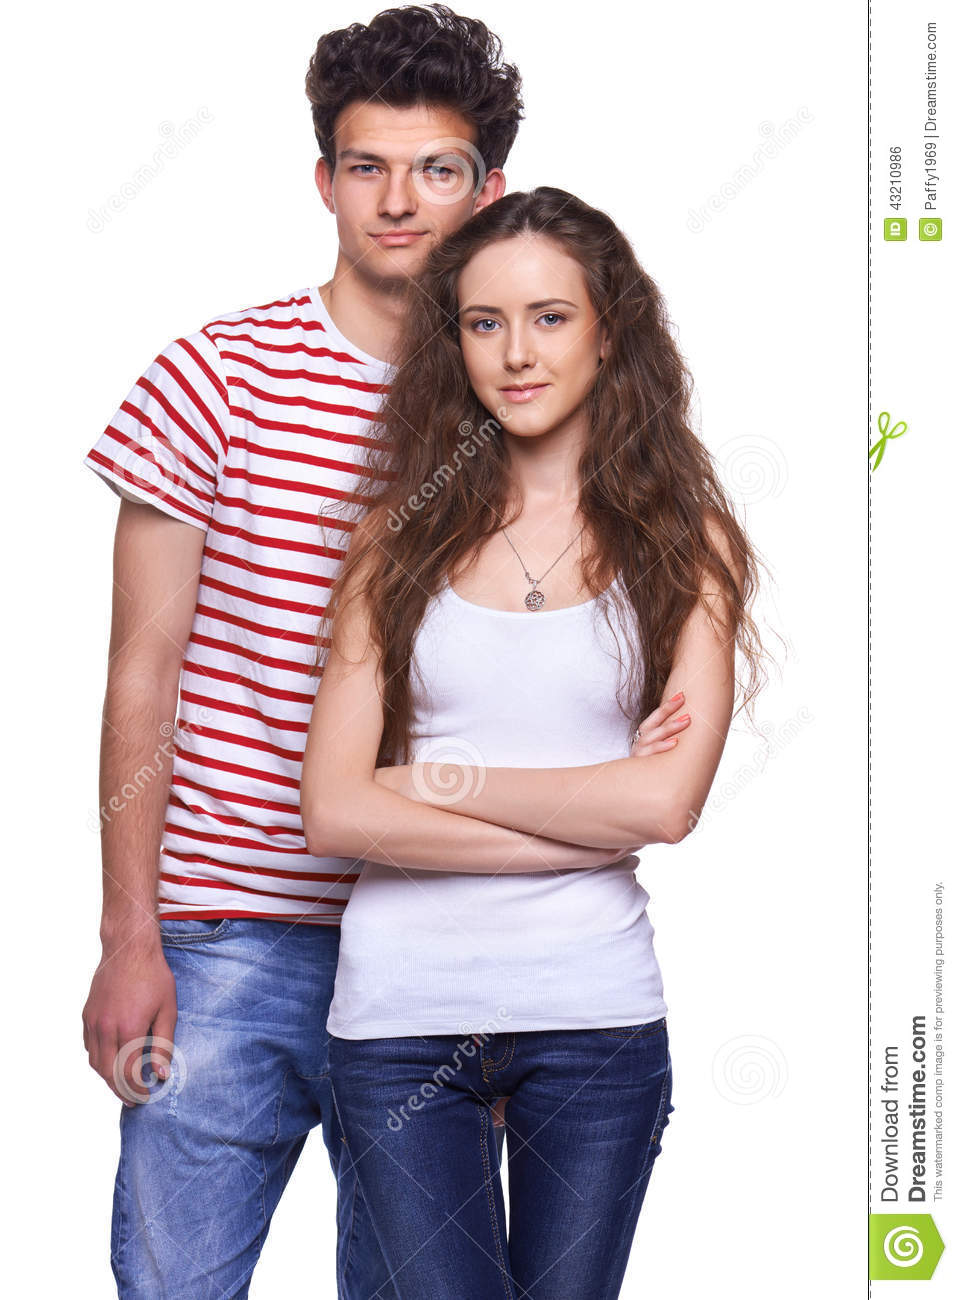 Casual teen couple standing